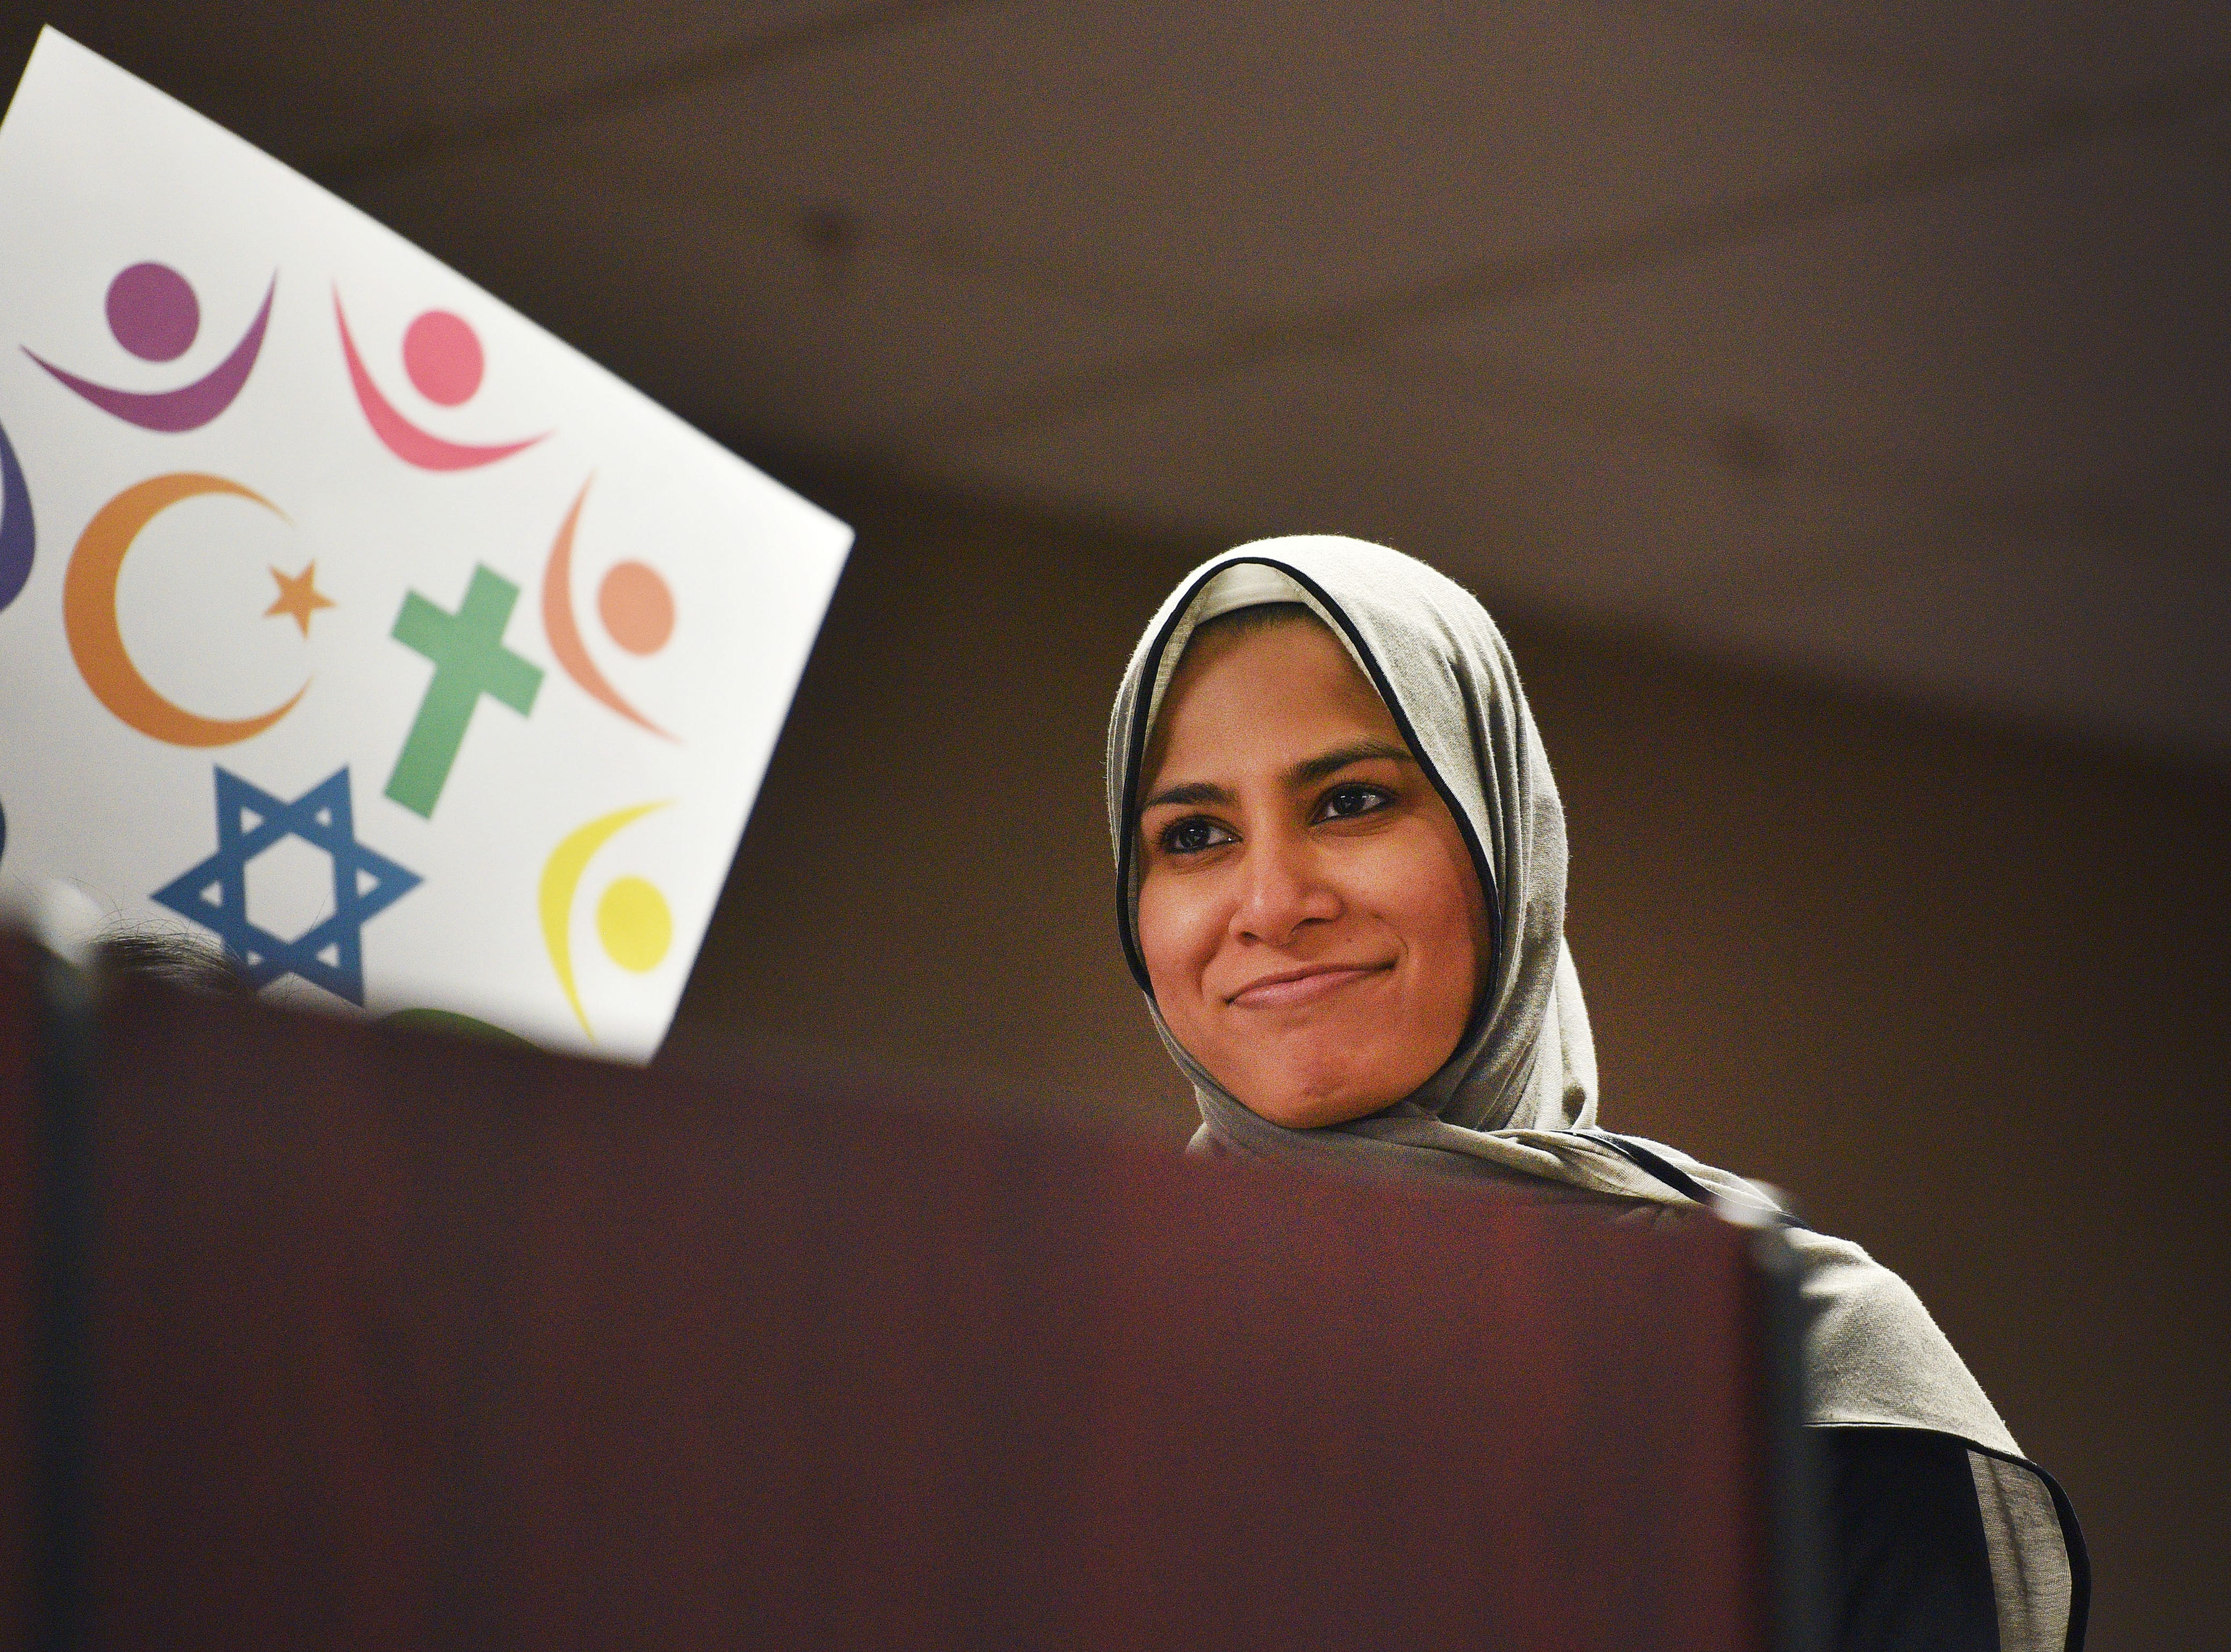 Sadaf Cassim speaks during the Women's March Saturday, Jan. 19, at the Downtown Sioux Falls Holiday Inn-City Centre in Sioux Falls.